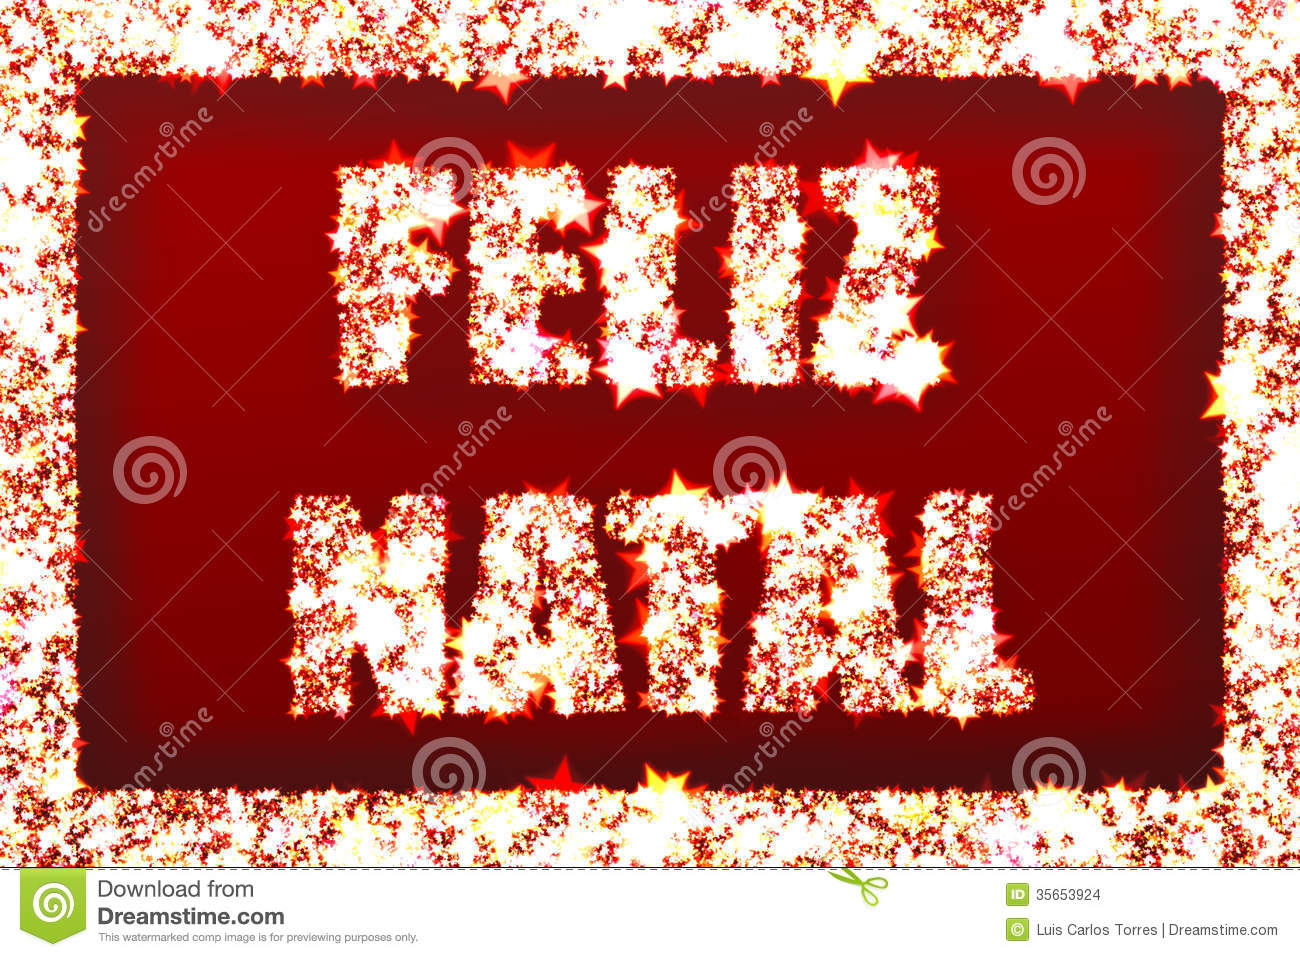 Feliz Natal - Merry Christmas Stock Images - Image: 35653924